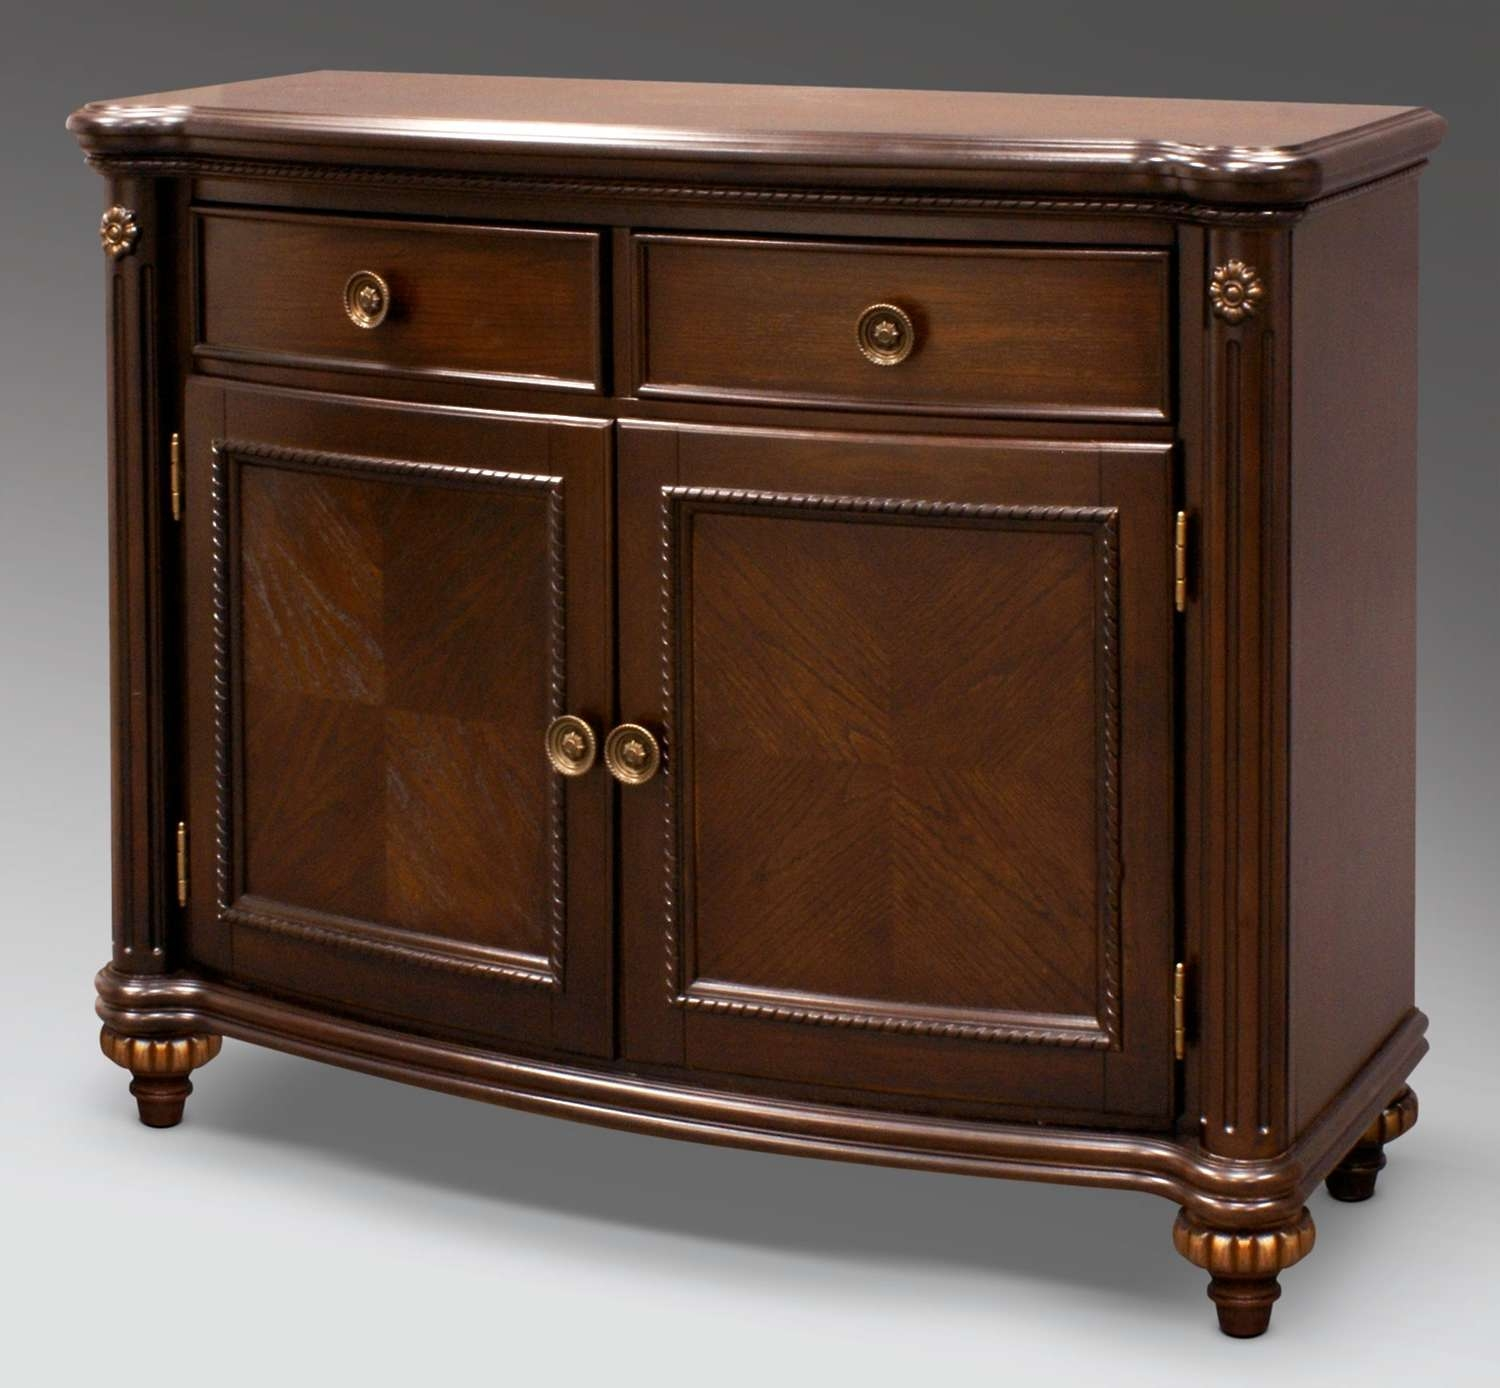 Dining Room Servers Buffet Furniture Pictures Cabinet Trends And Inside Dining Room Sideboards And Buffets (View 6 of 20)